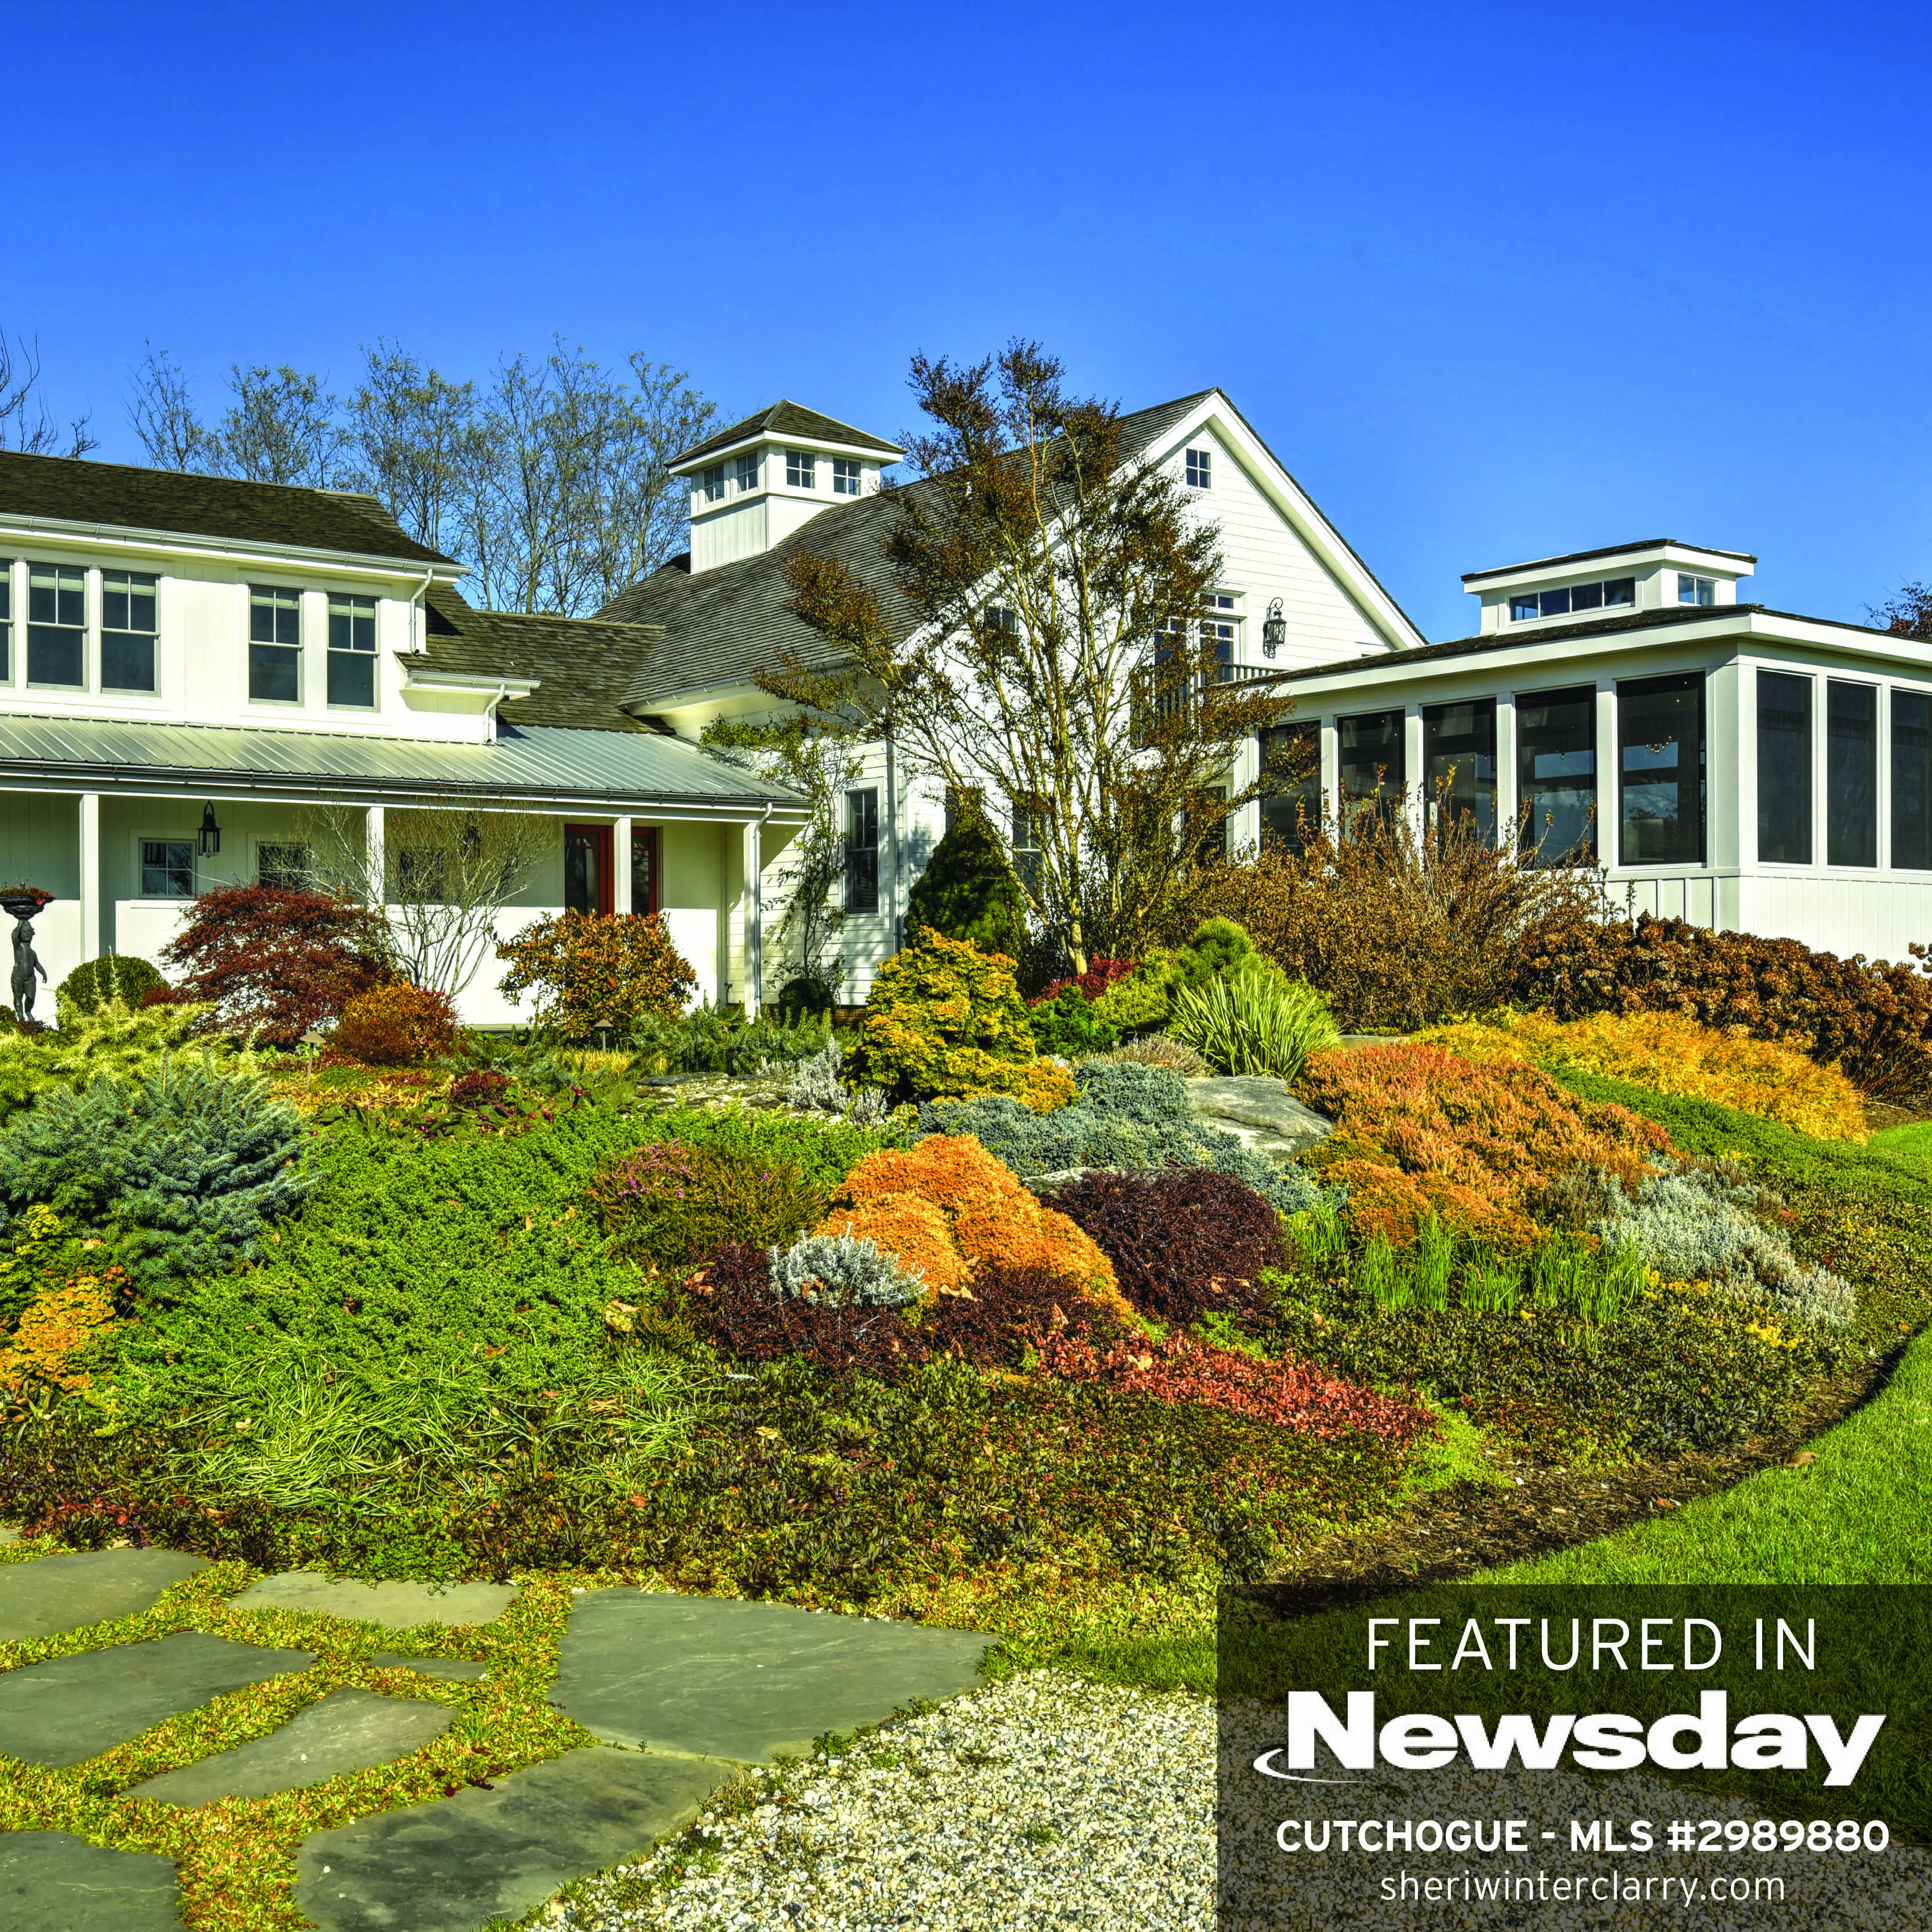 $2.15M Cutchogue home with well-known gardens on market